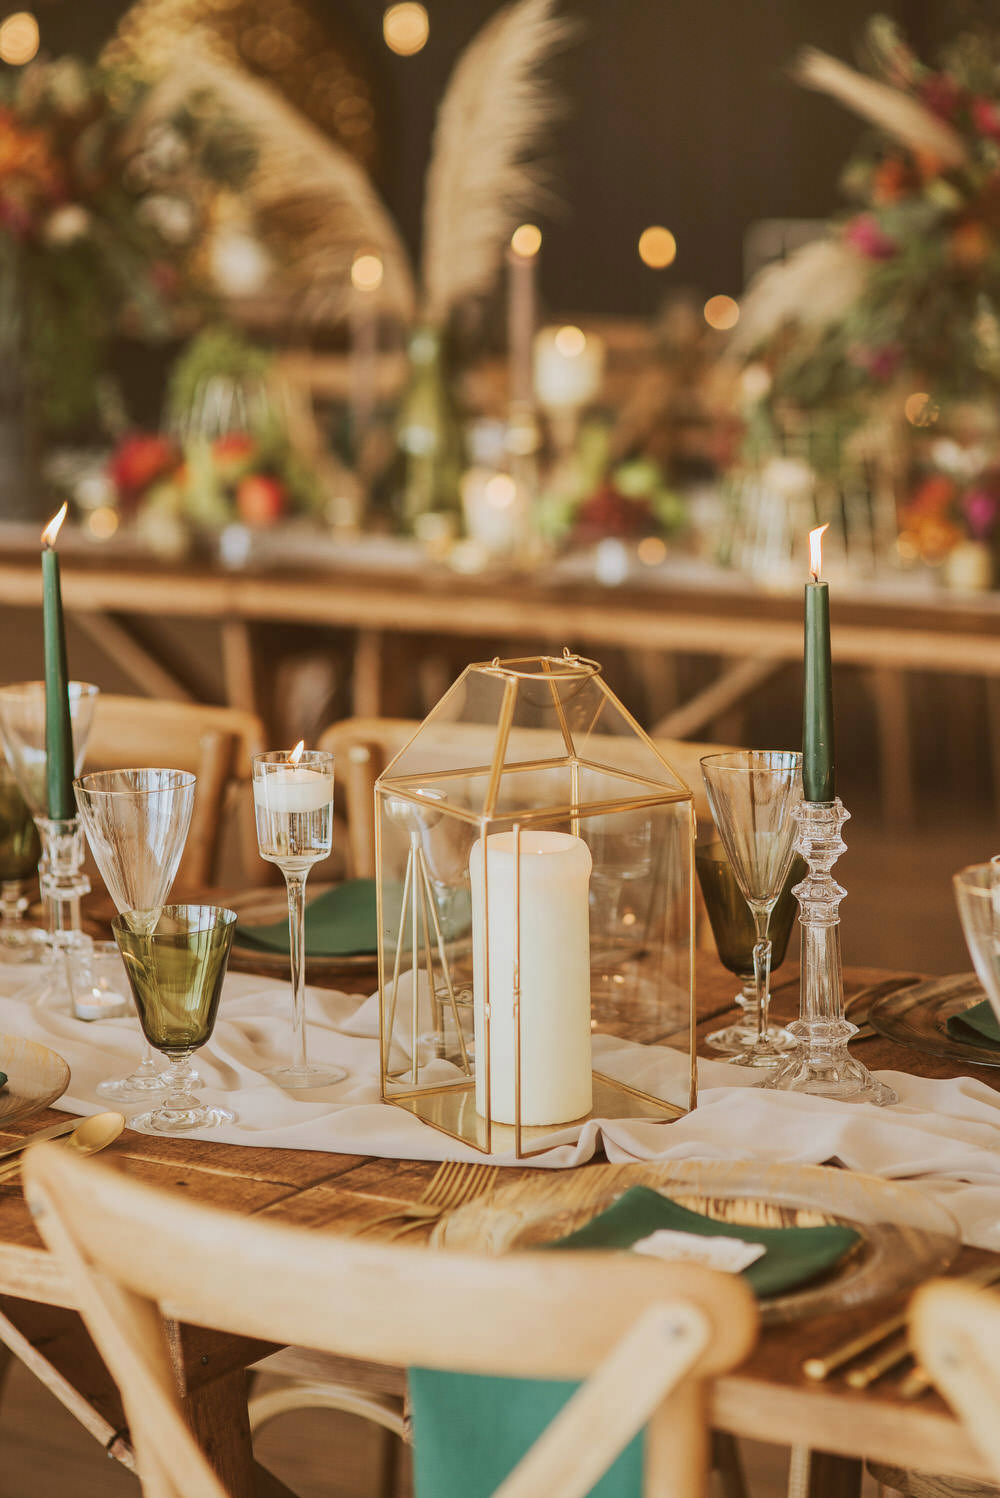 Terrarium Candle Holder Decor Decoration Table Tablescape Green Gold Wedding Ideas Samantha Davis Photography